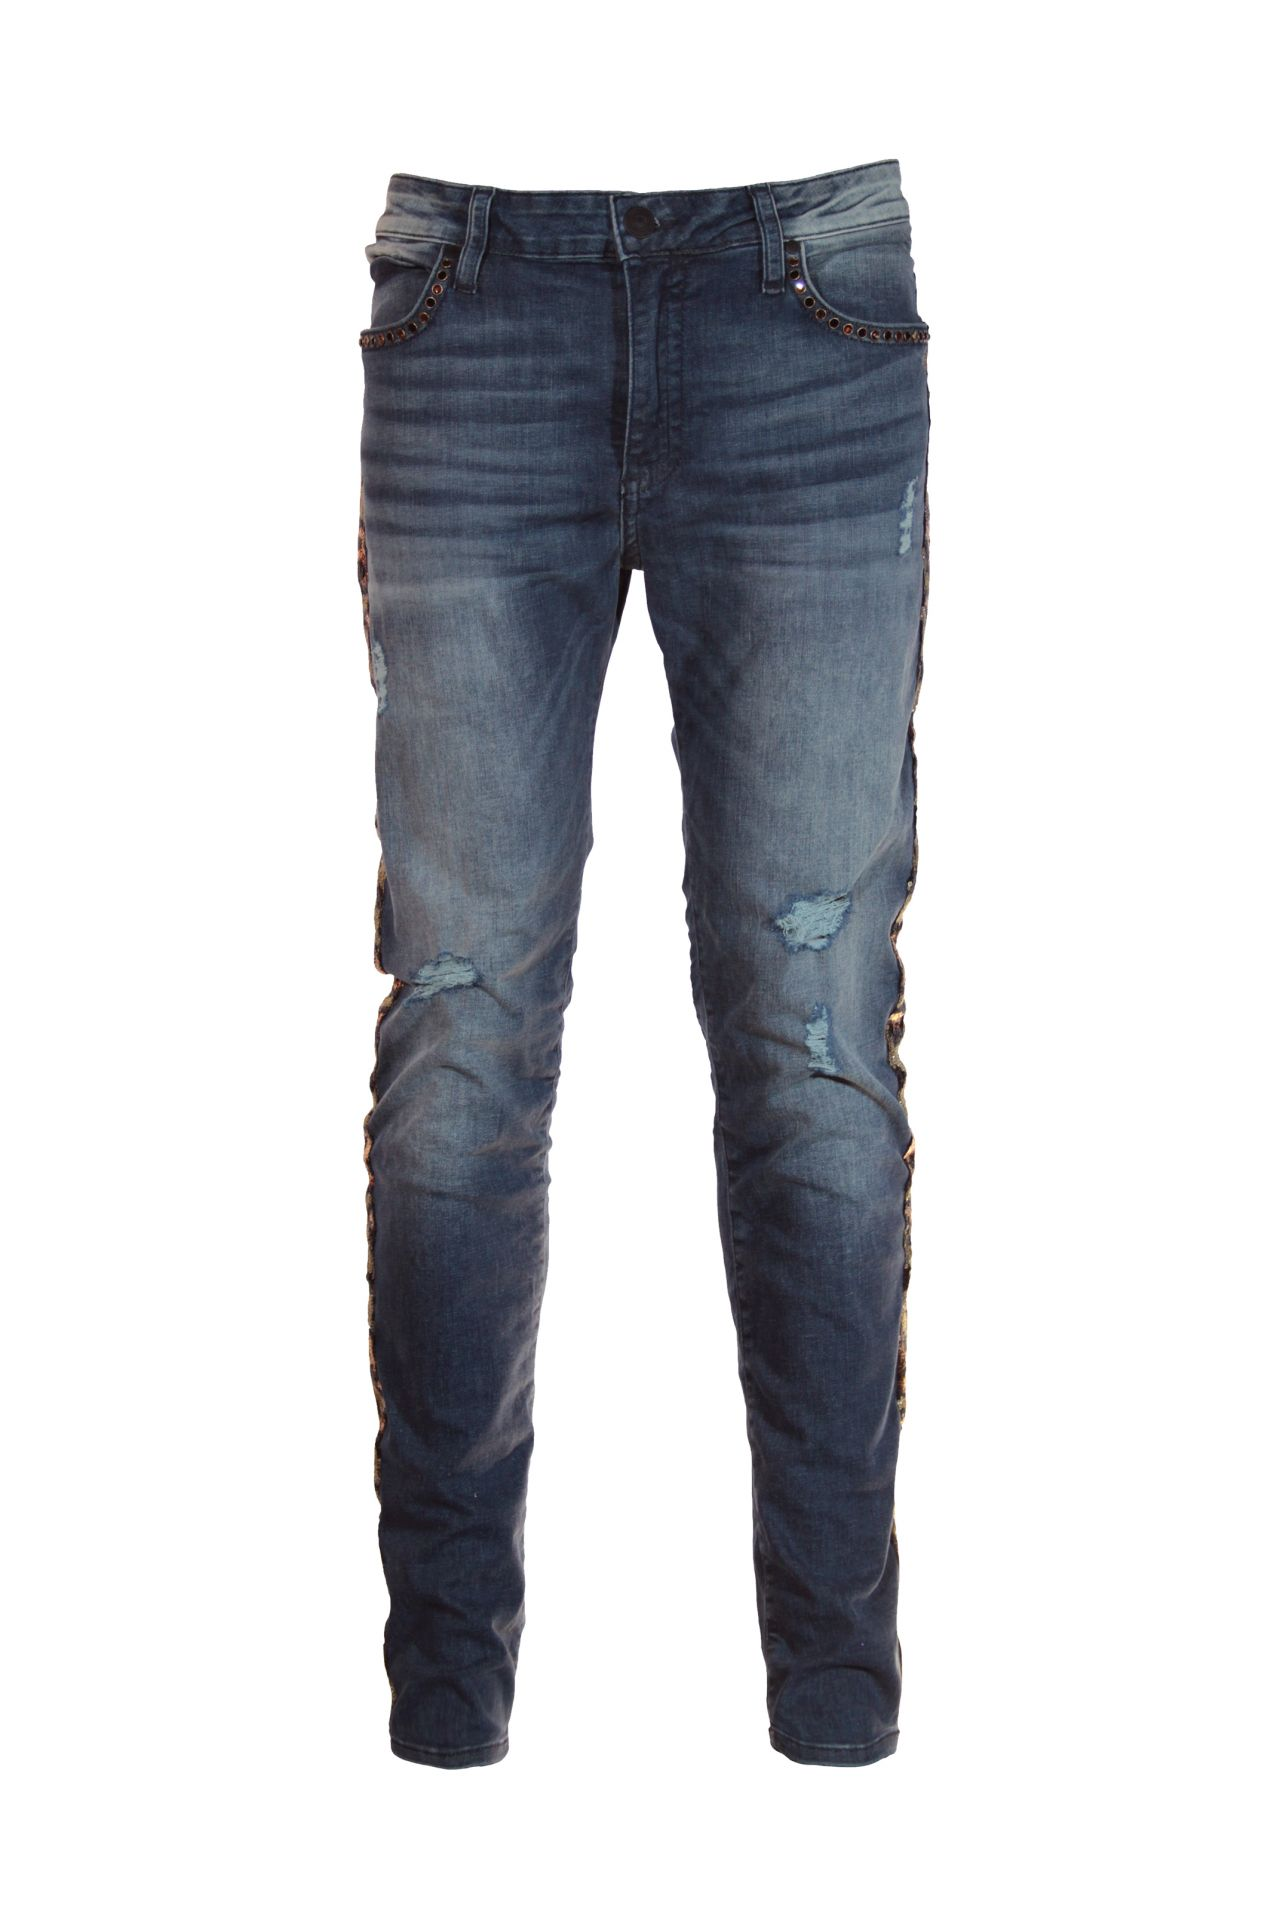 SKINNY JEAN IN ELROY DARK BROKEN WITH LEOPARD SEQUENCE AND CRYSTALS